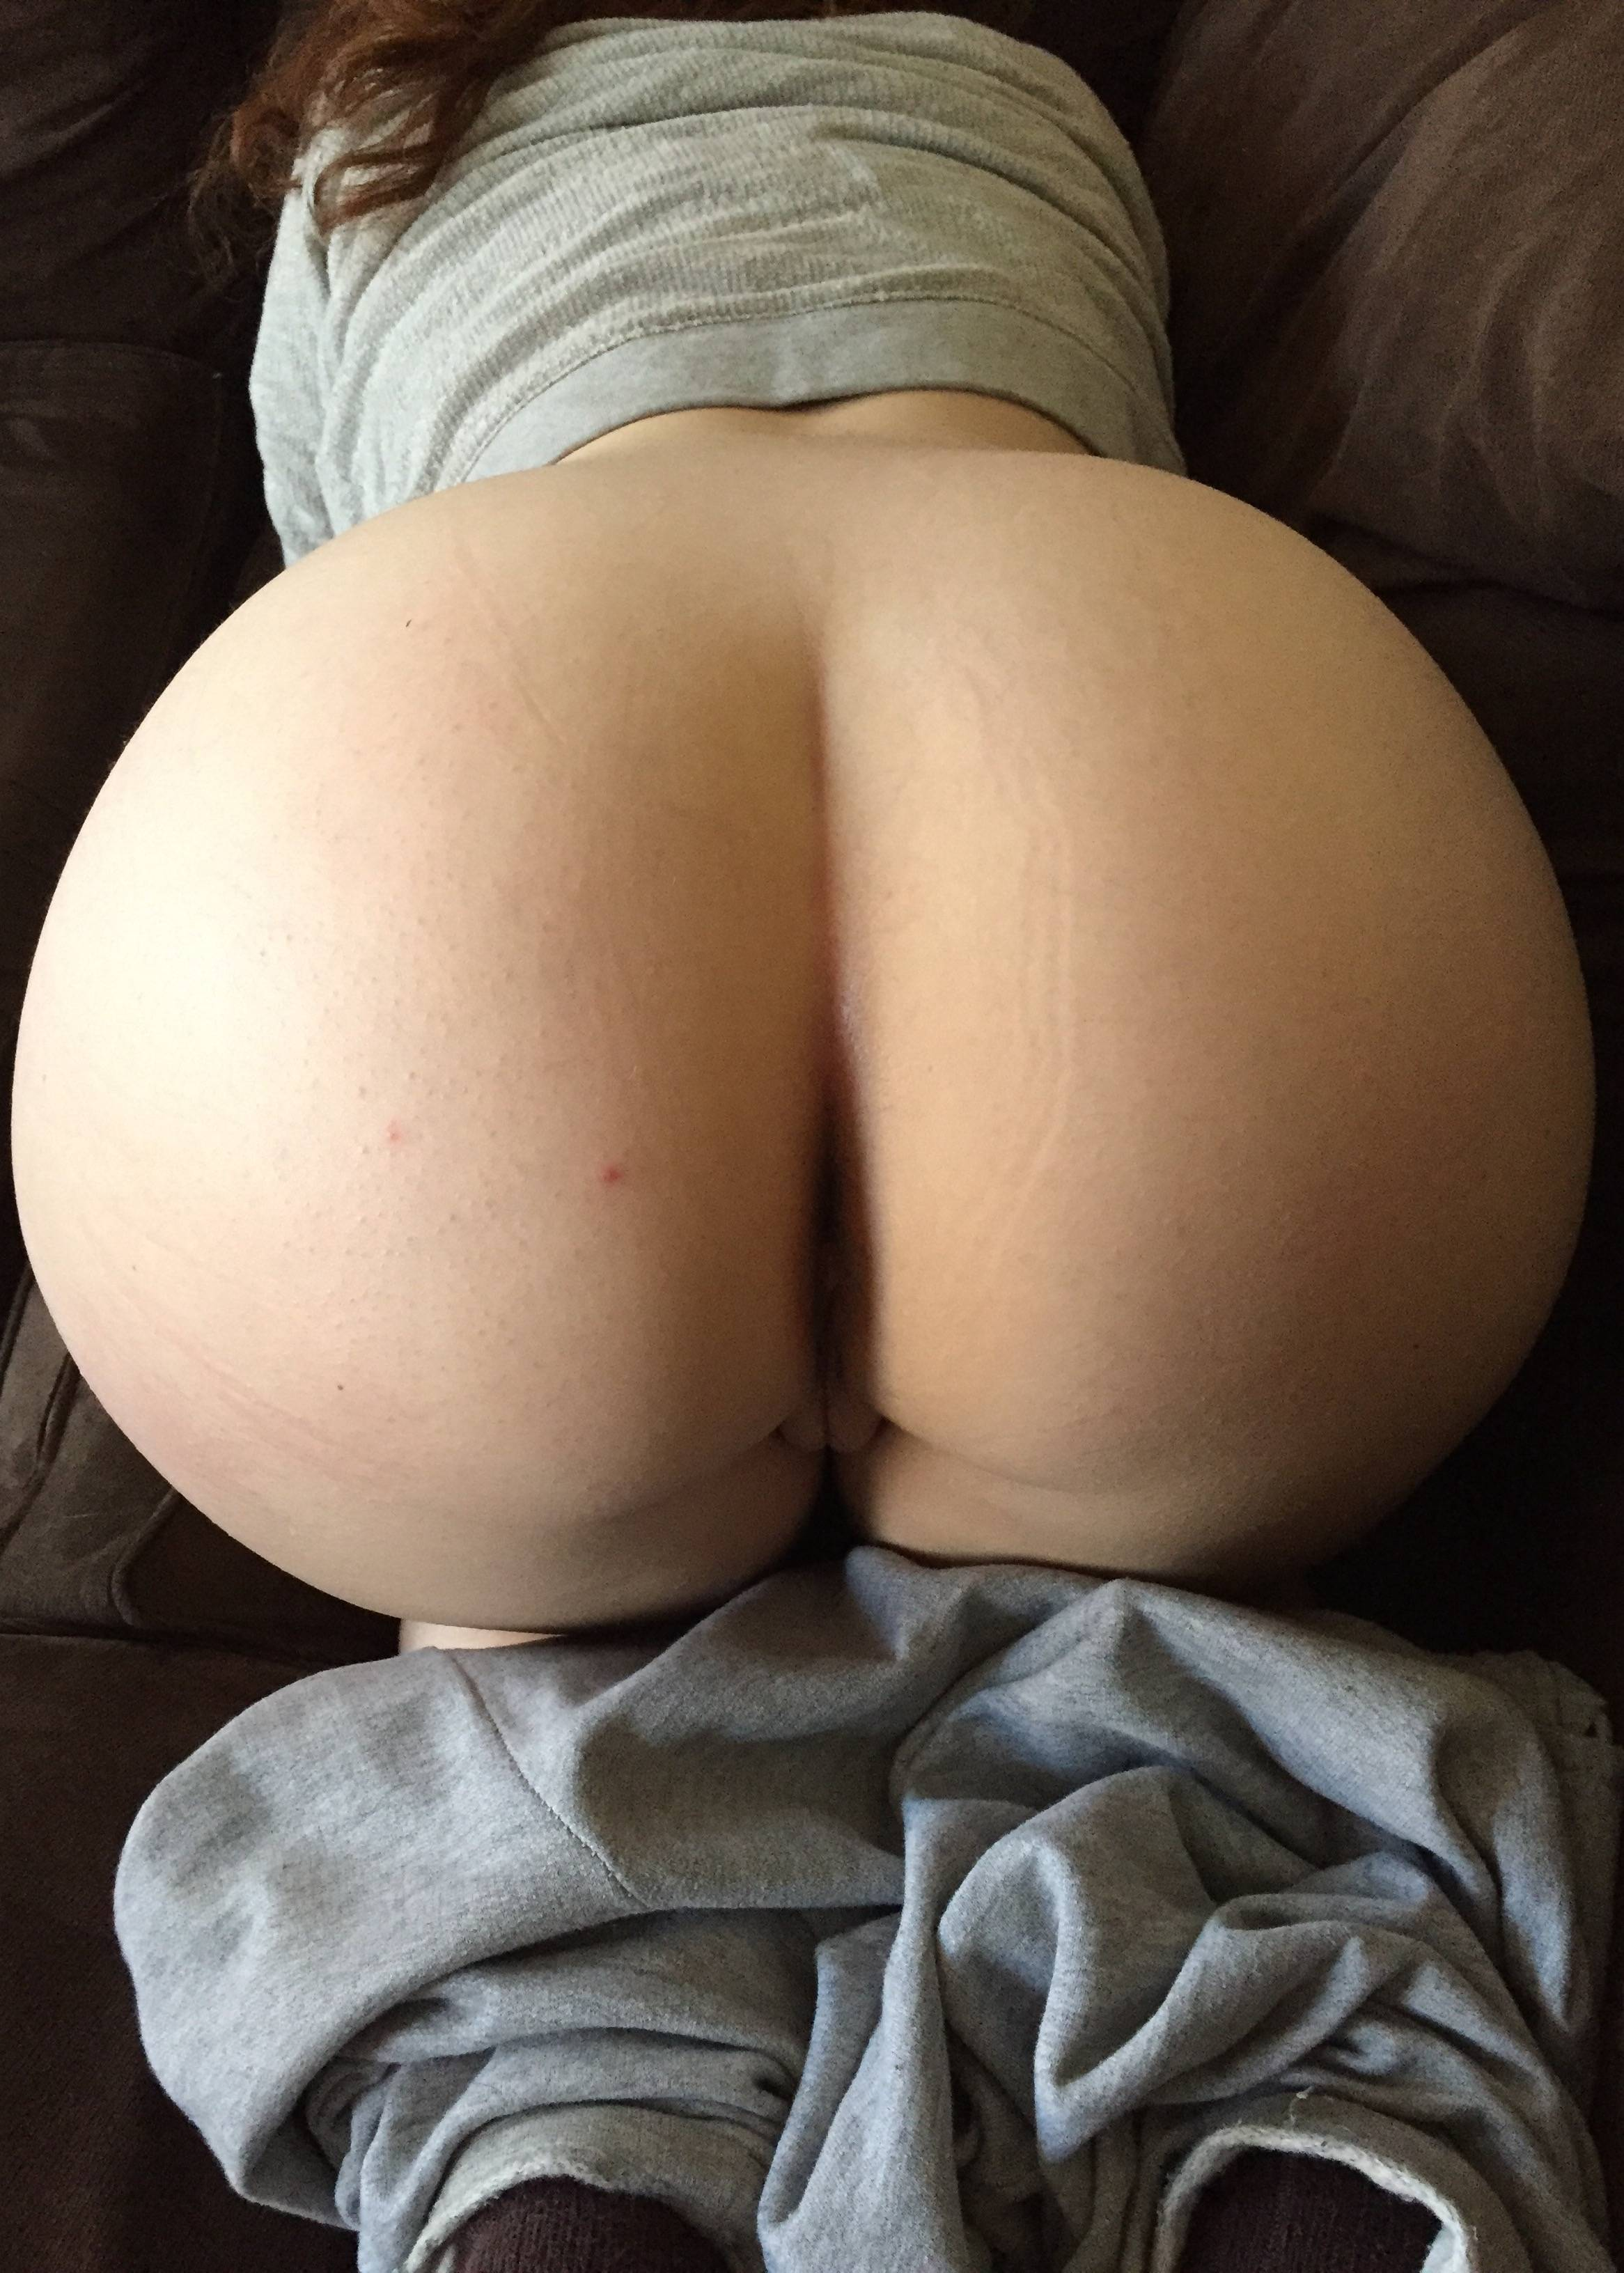 Big Round Ass Porn big round ass in sweats porn pic - eporner